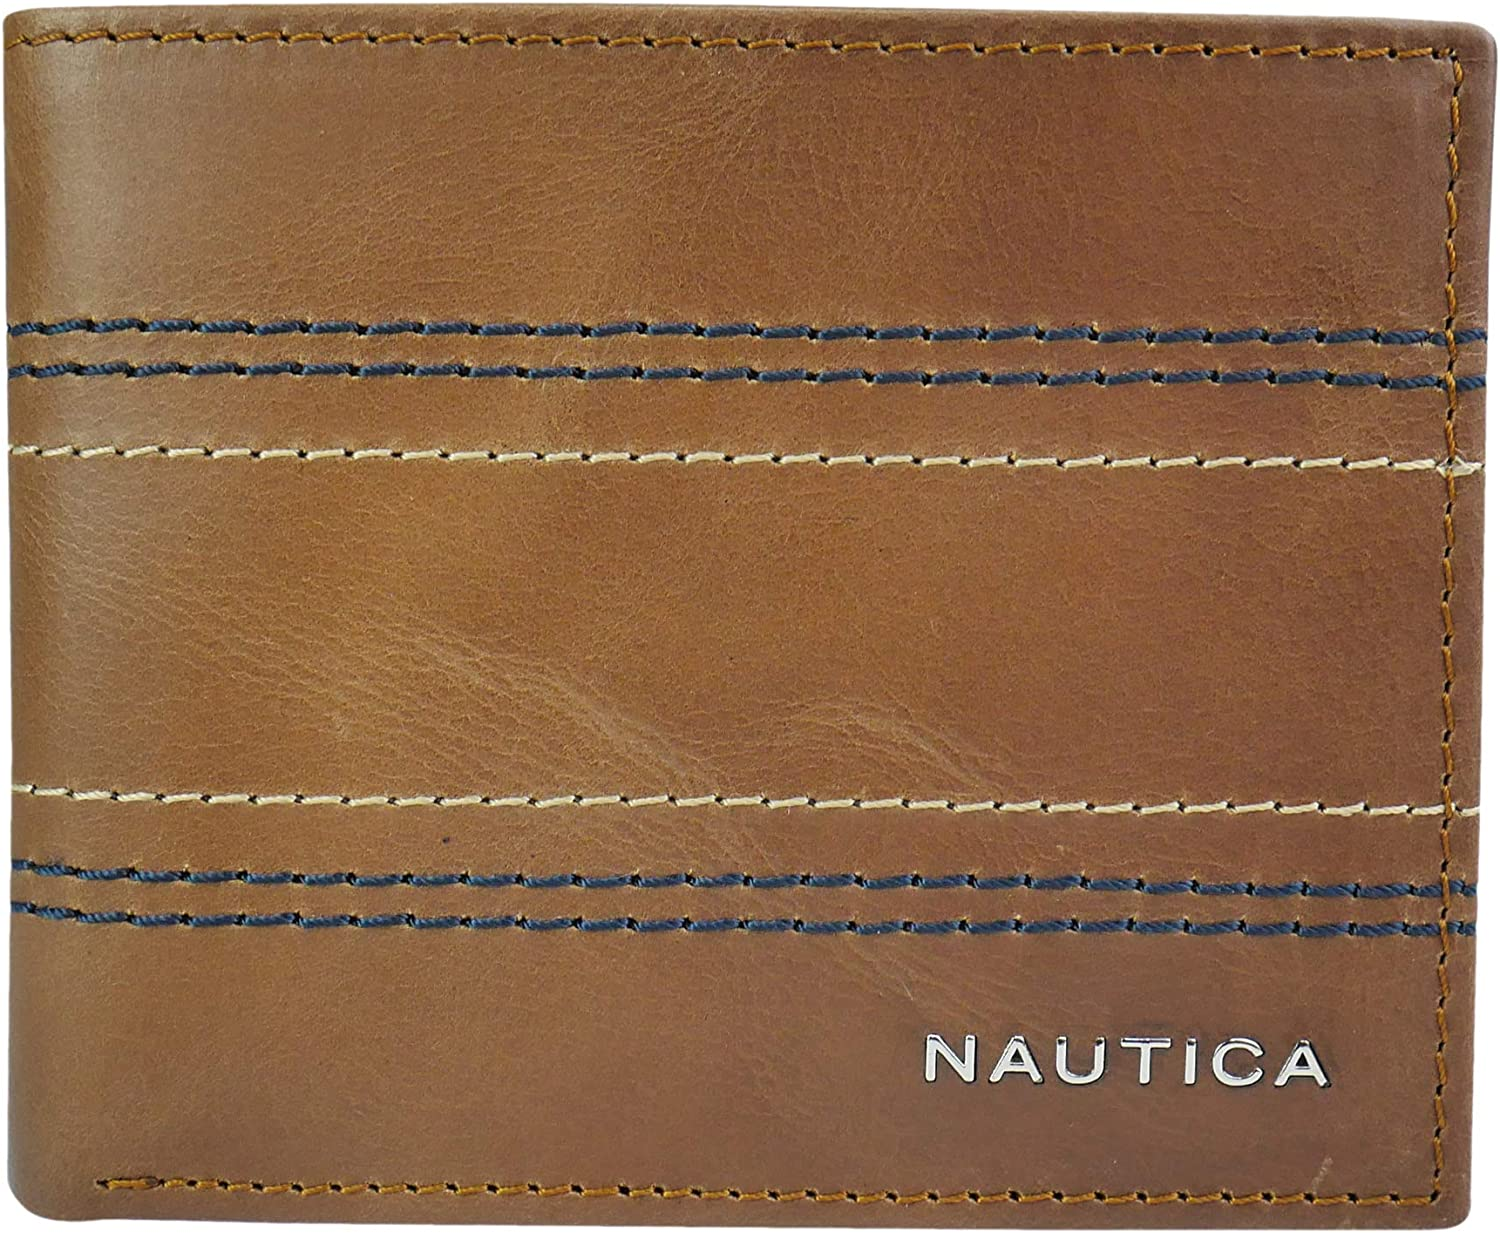 Nautica Mens Leather Wallet RFID Blocking Slim Thin Bifold